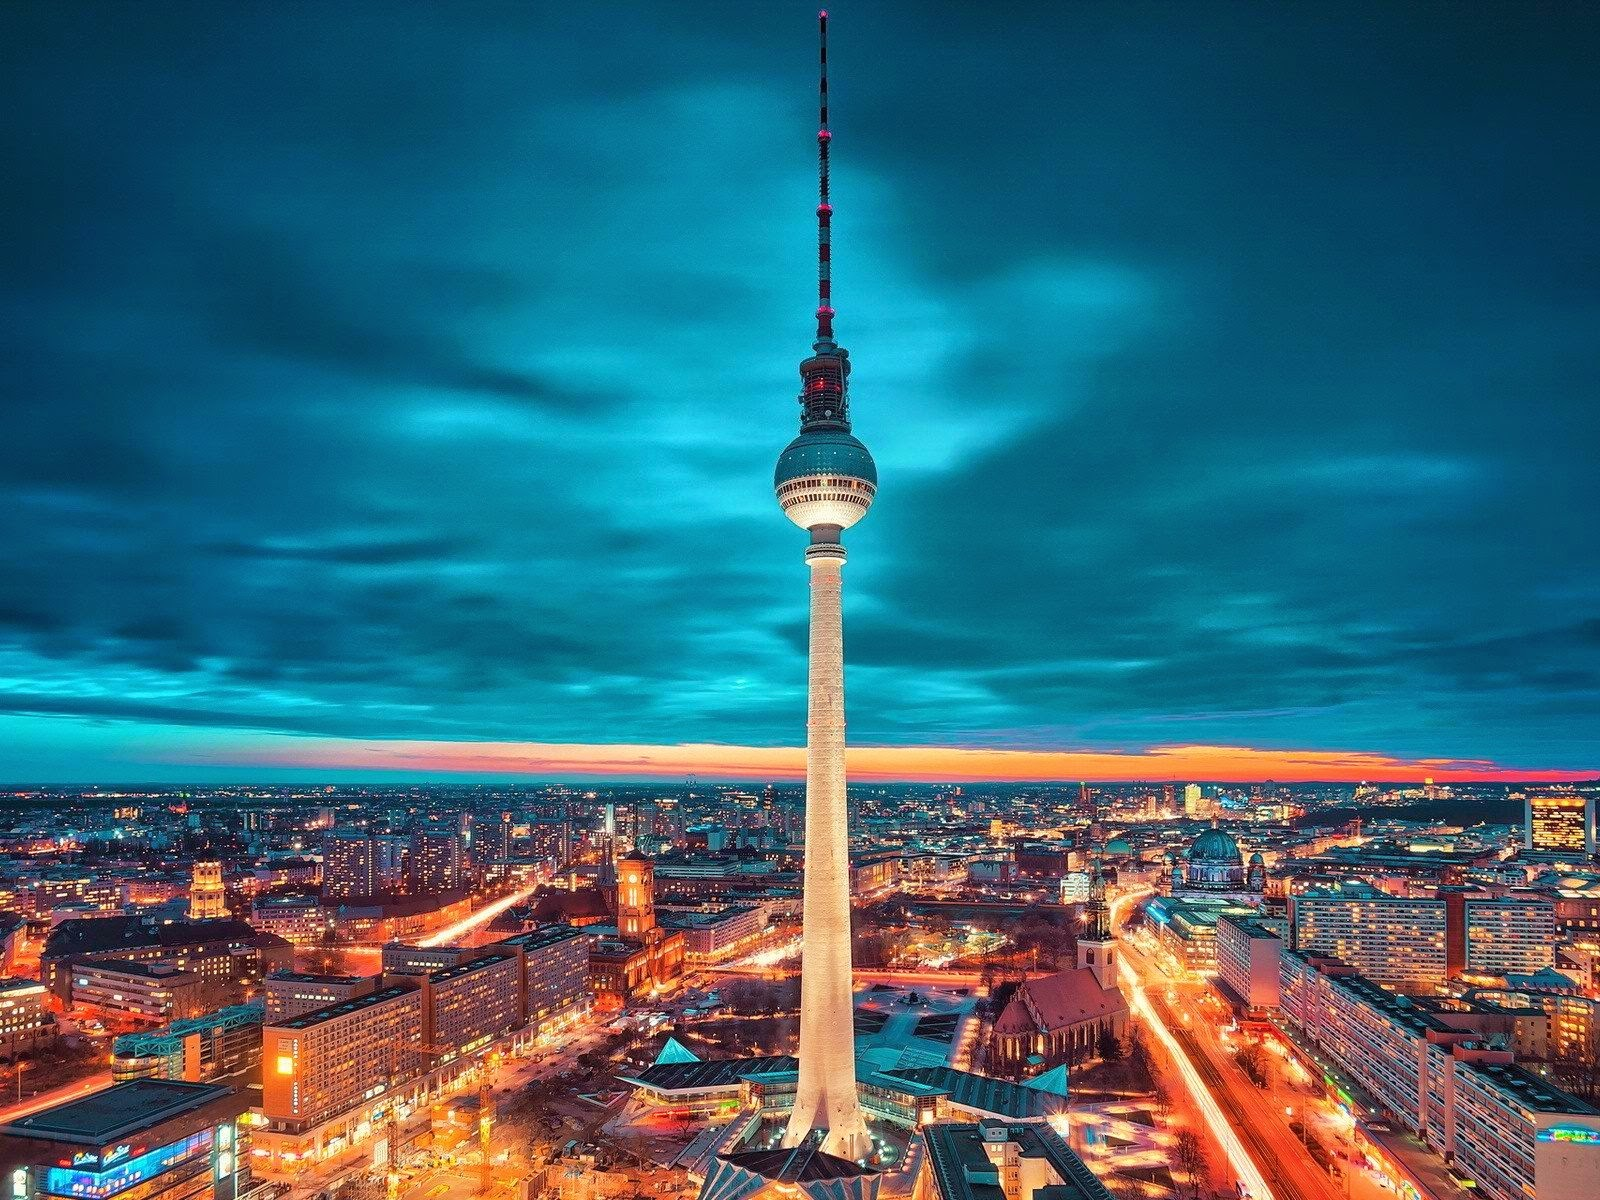 Berlin Germany wallpaper